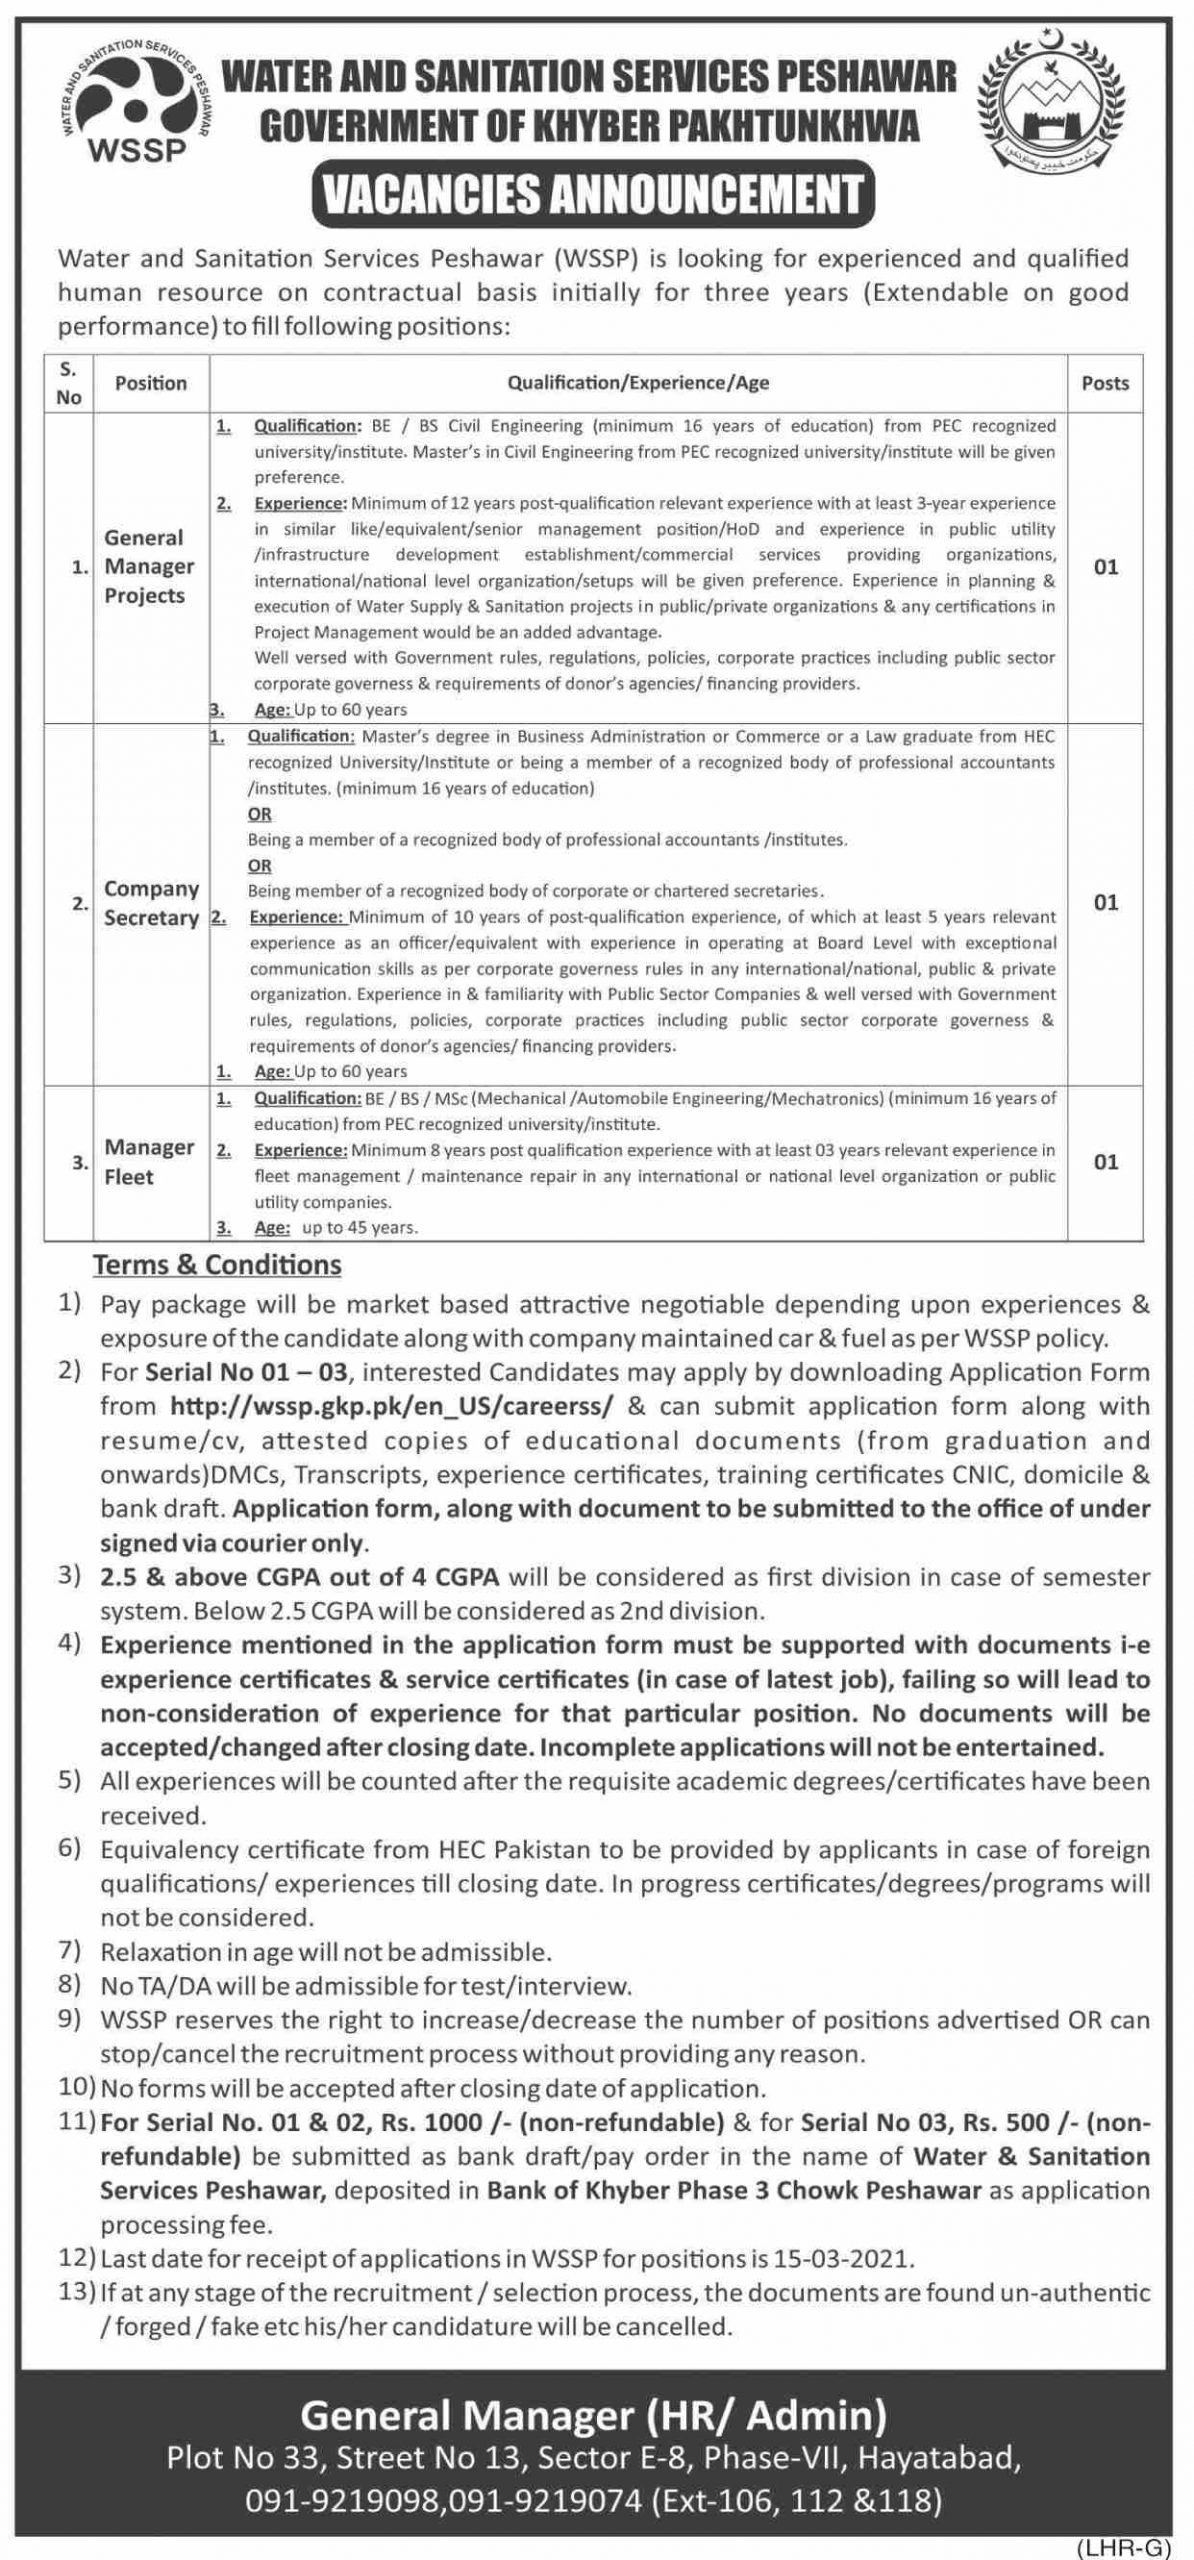 Water and Sanitation Services Peshawar WSSP Jobs February 2021